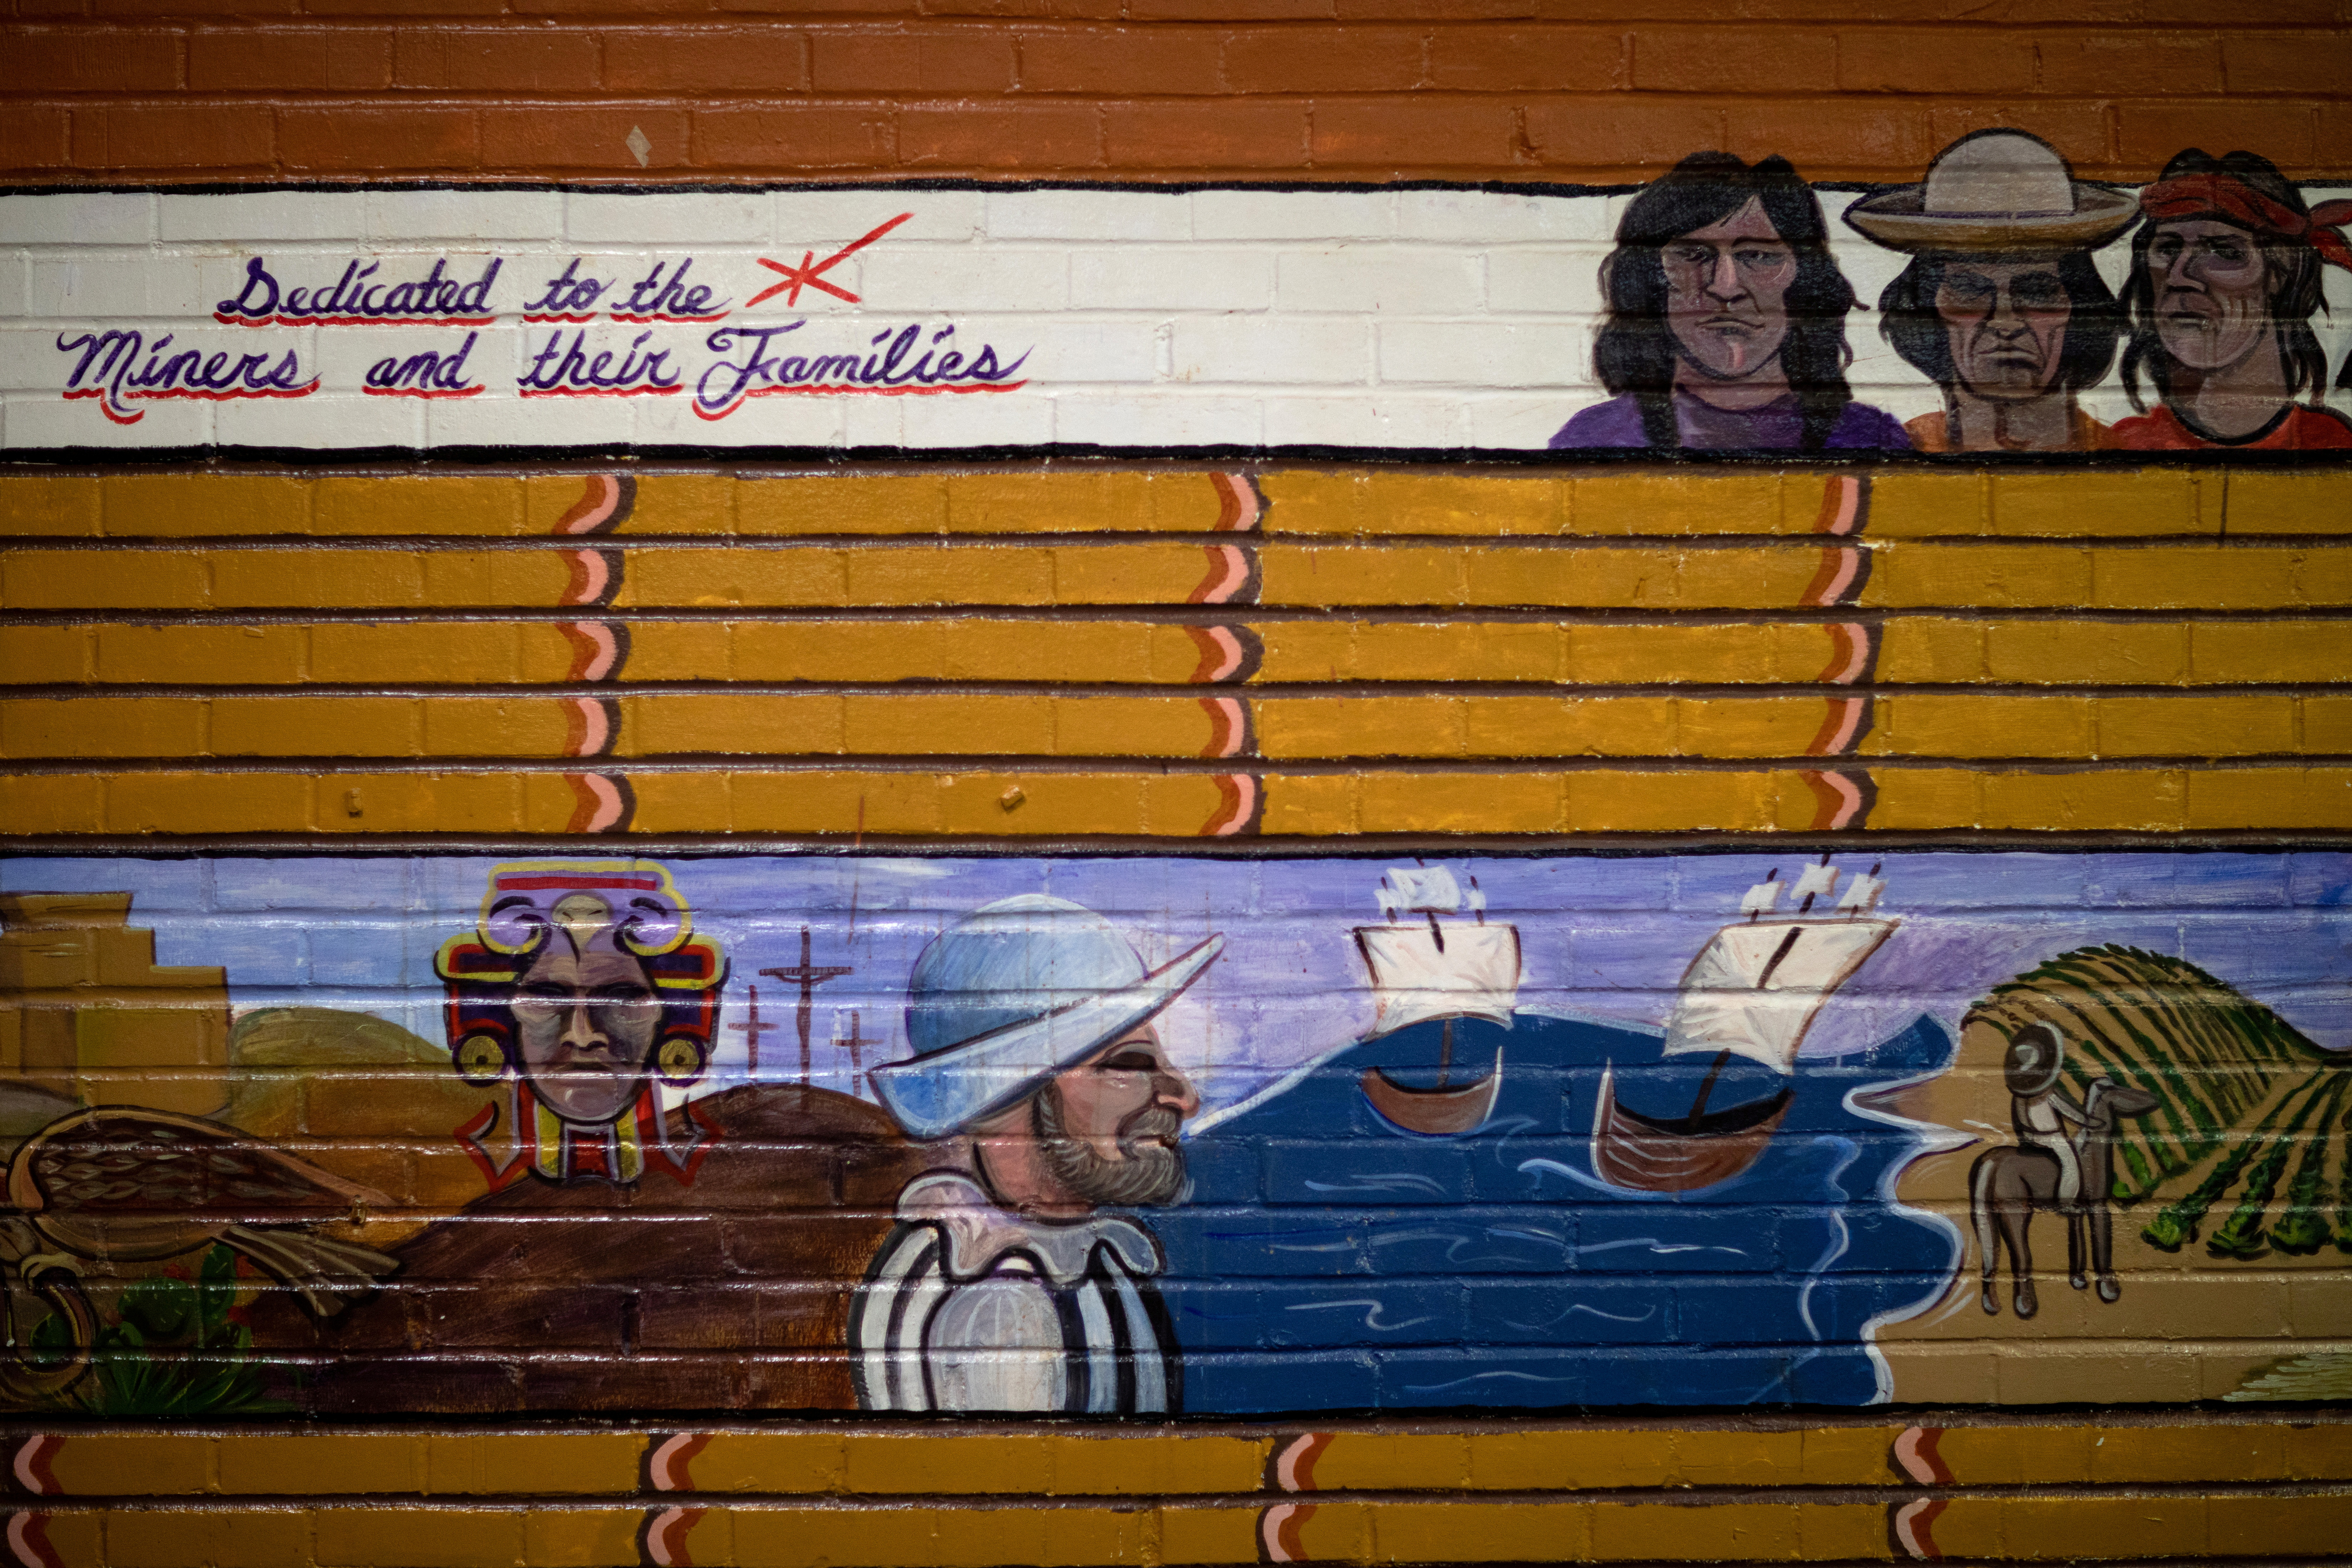 A mural celebrates the history of mining at City Hall in Superior, Arizona, U.S., March 29, 2021.  REUTERS/Caitlin O'Hara/File Photo